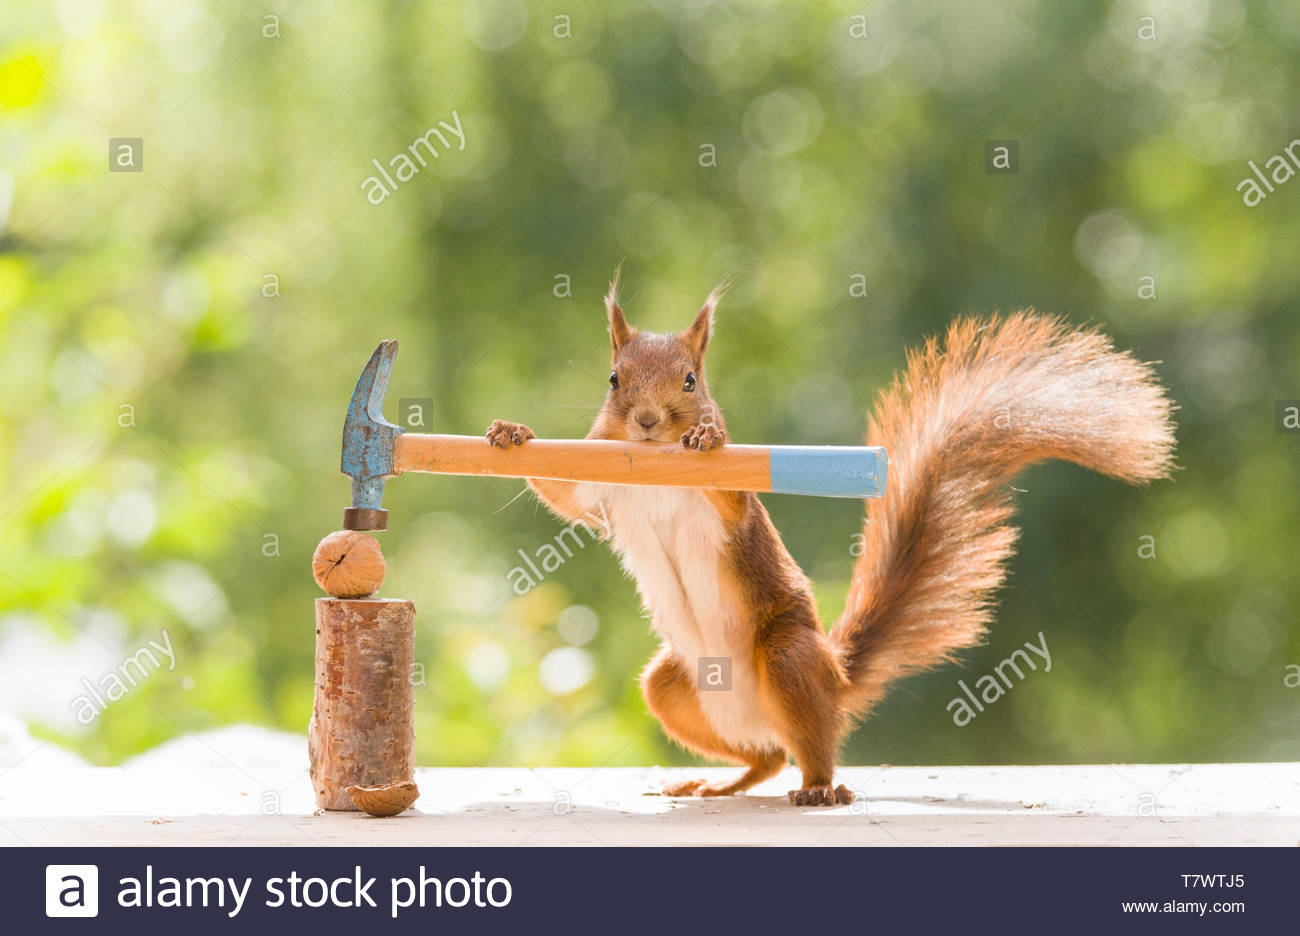 Hammer And Nutcracker High Resolution Stock Photography and Images - Alamy